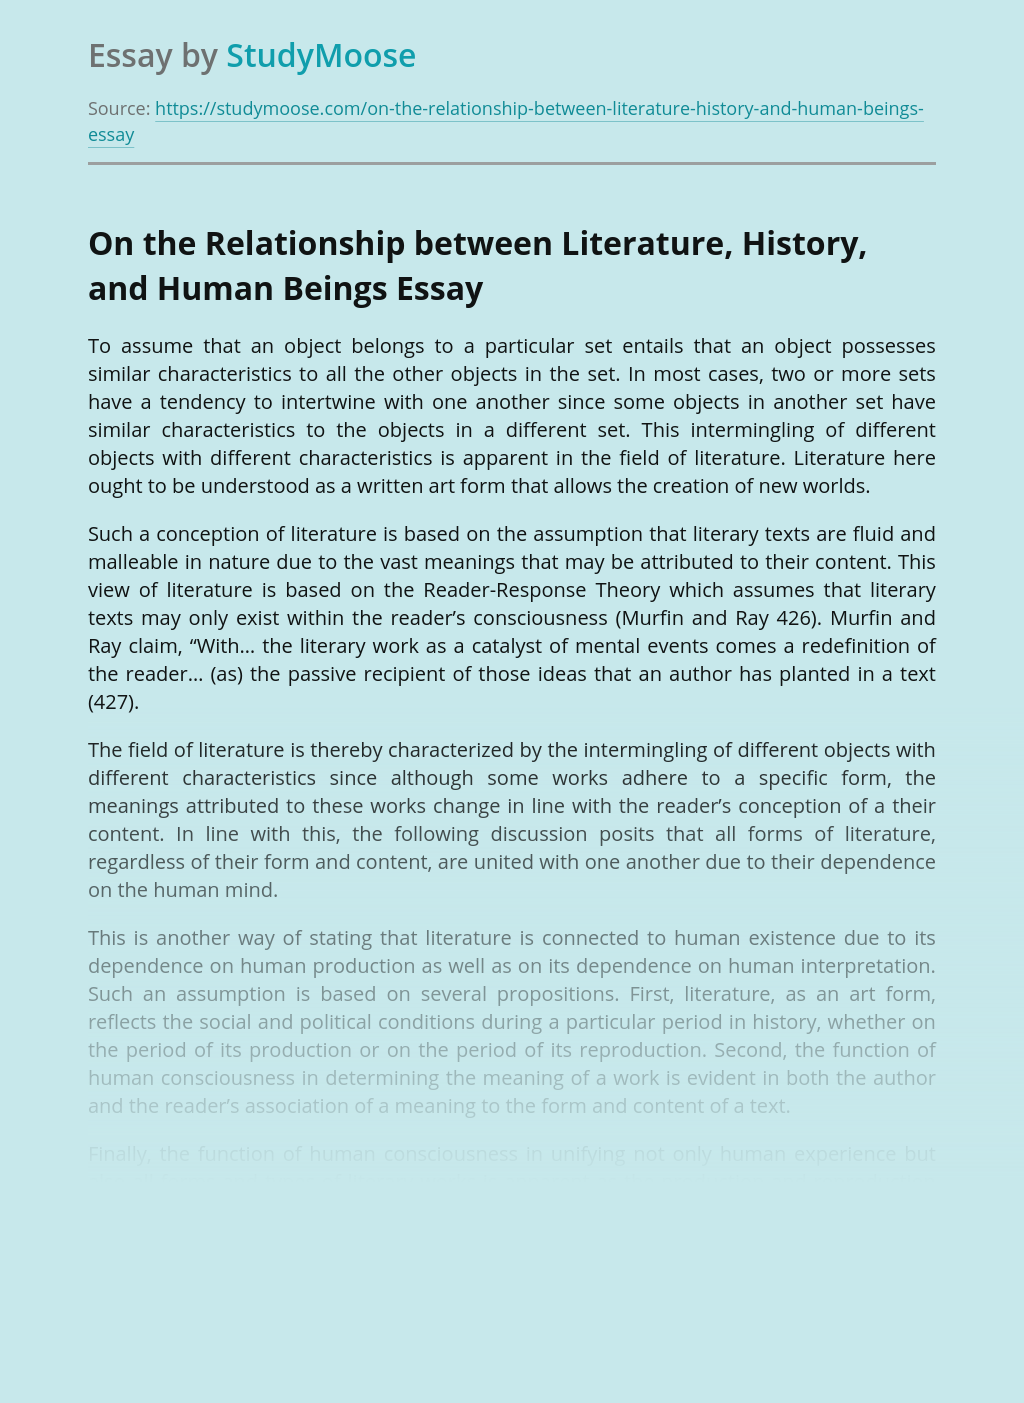 On the Relationship between Literature, History, and Human Beings